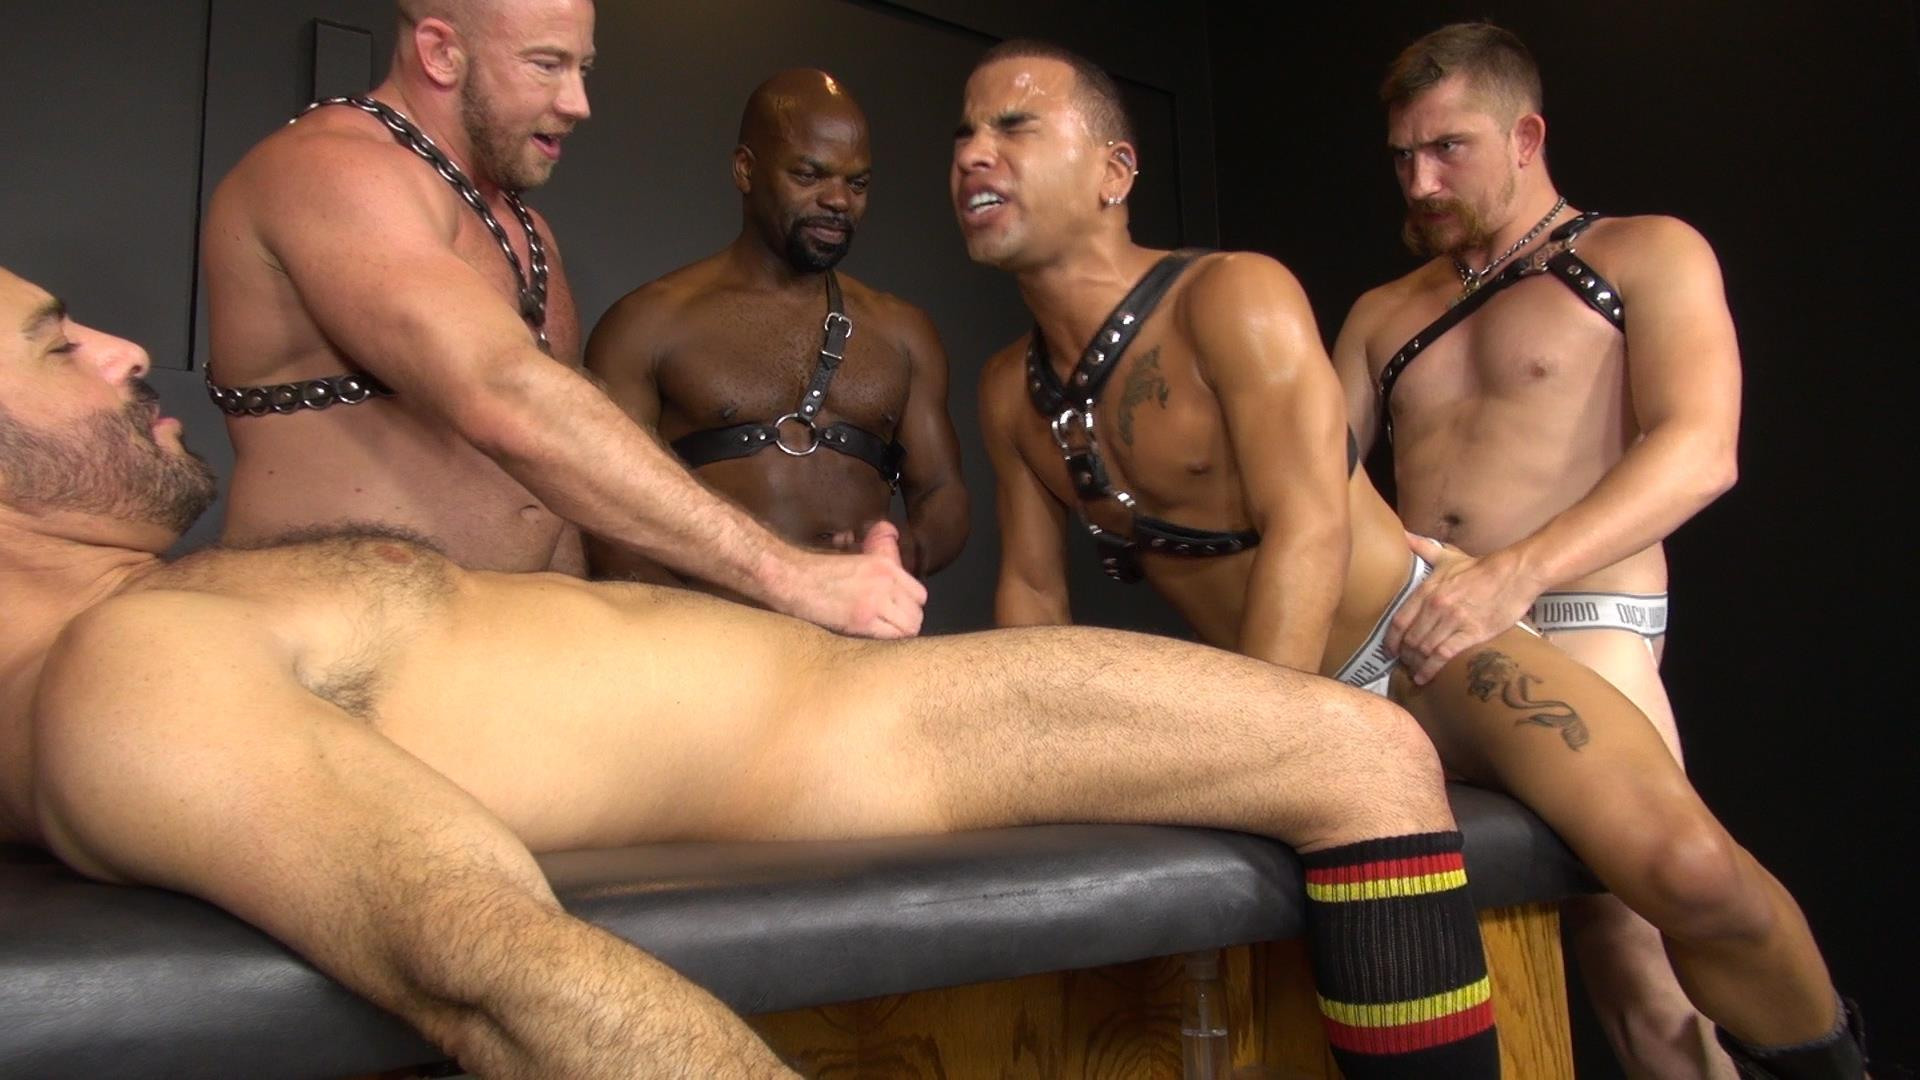 Interracial Muscle Orgy